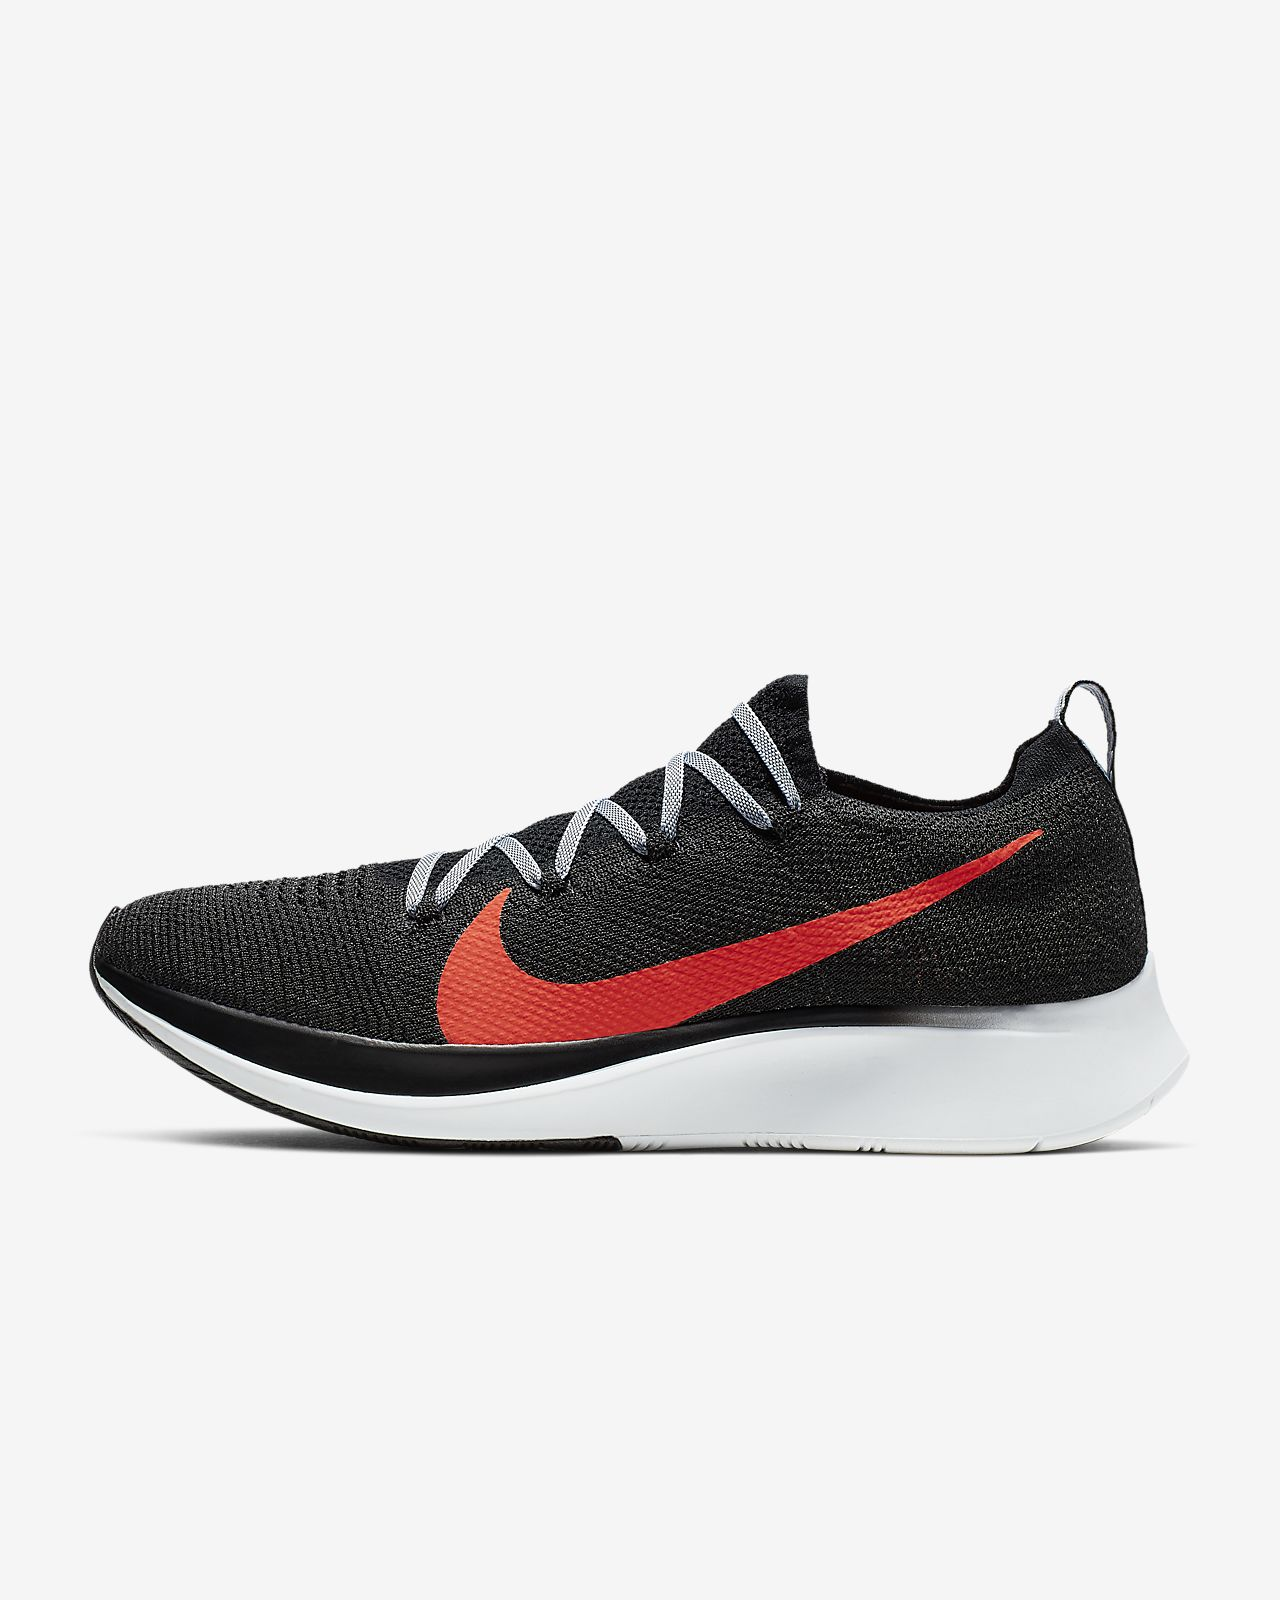 3f97a30e5e4f4 Nike Zoom Fly Flyknit Men s Running Shoe. Nike.com